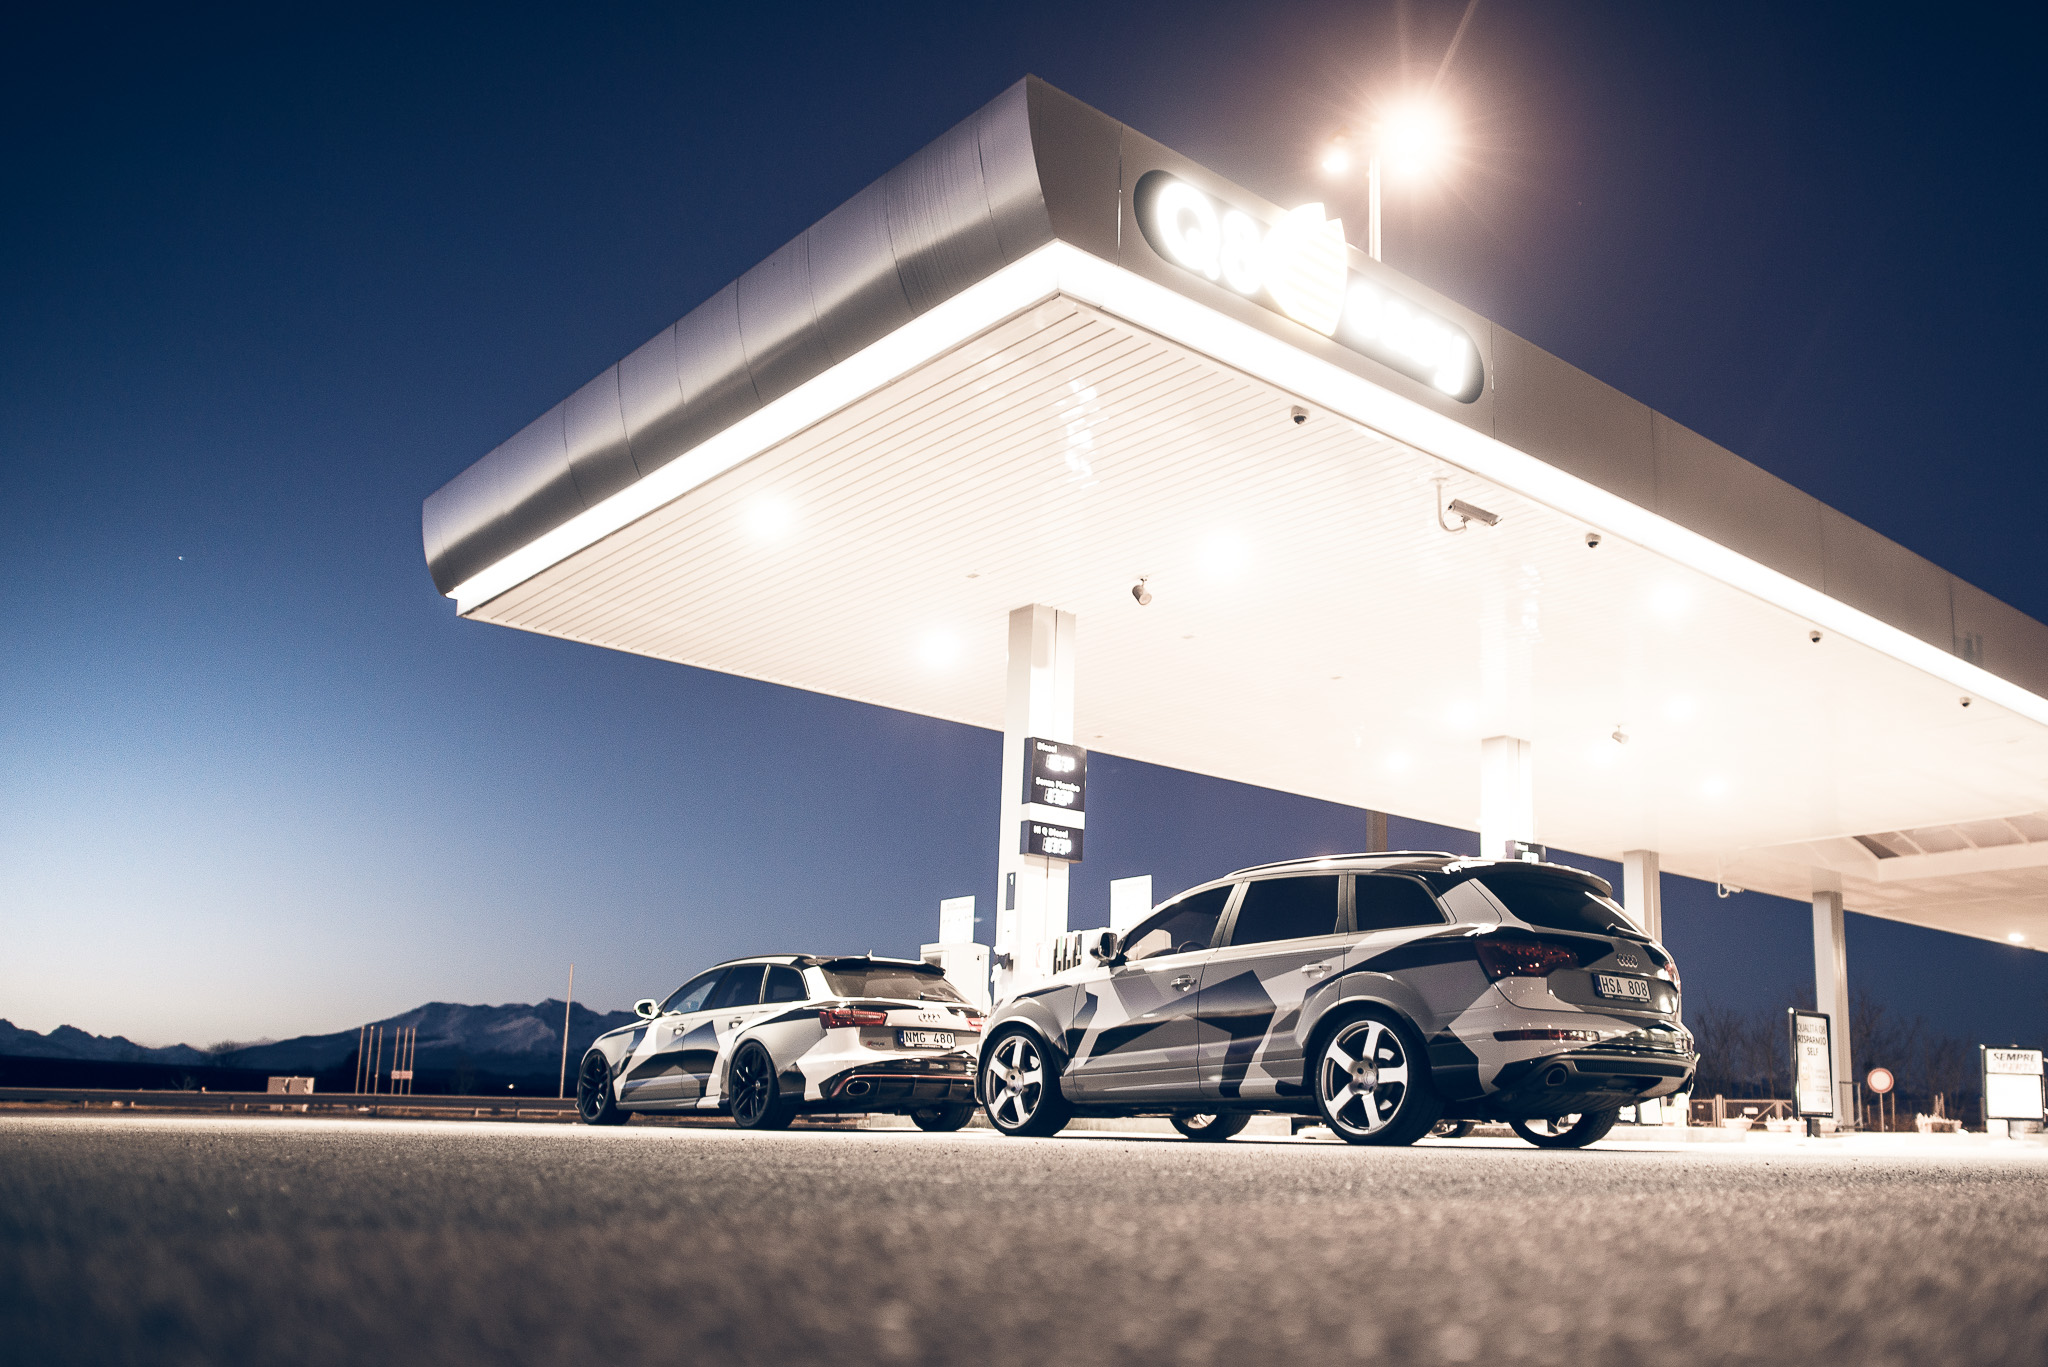 Jon Olsson Adds Another Winter Mobile To His Lineup Celebrity Cars Blog